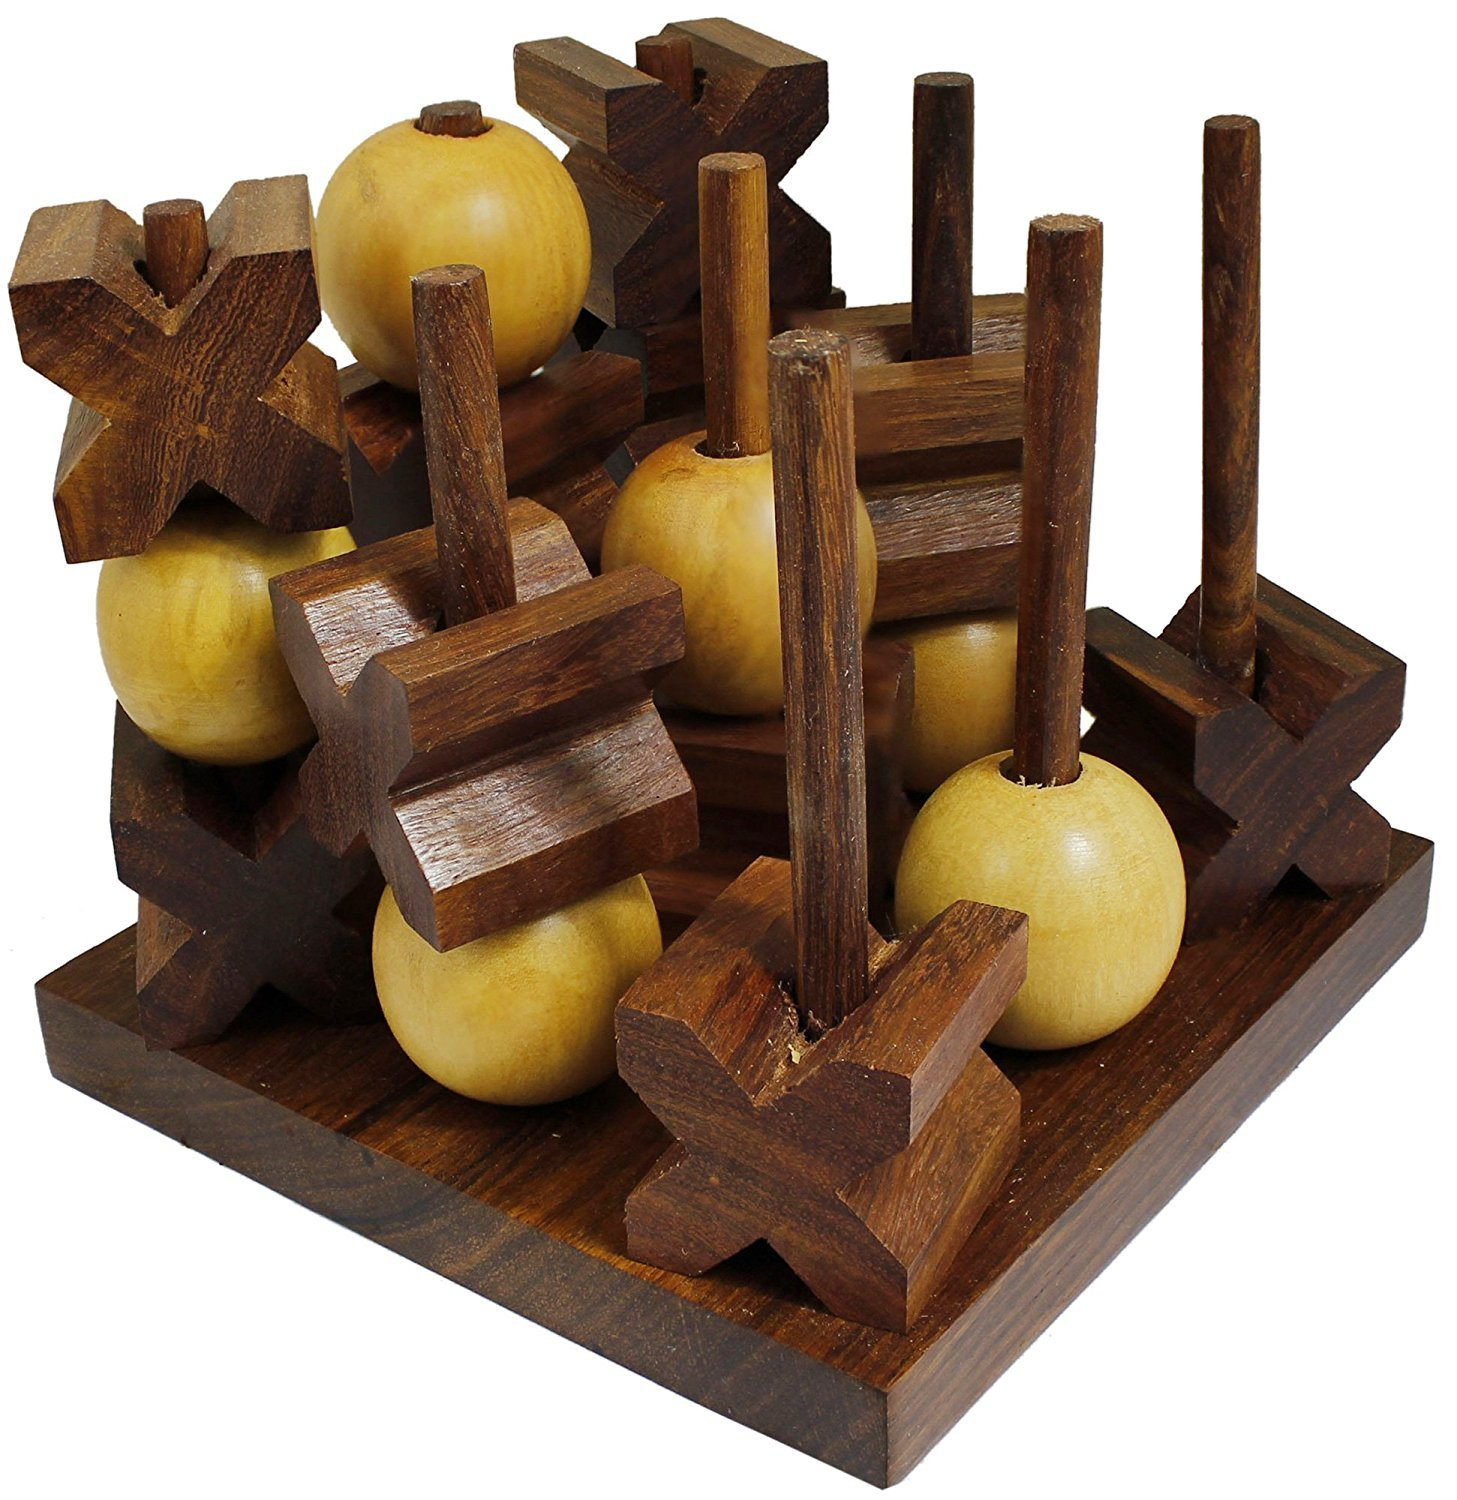 Tic-Tac-Toe 3D Strategy Wooden Game